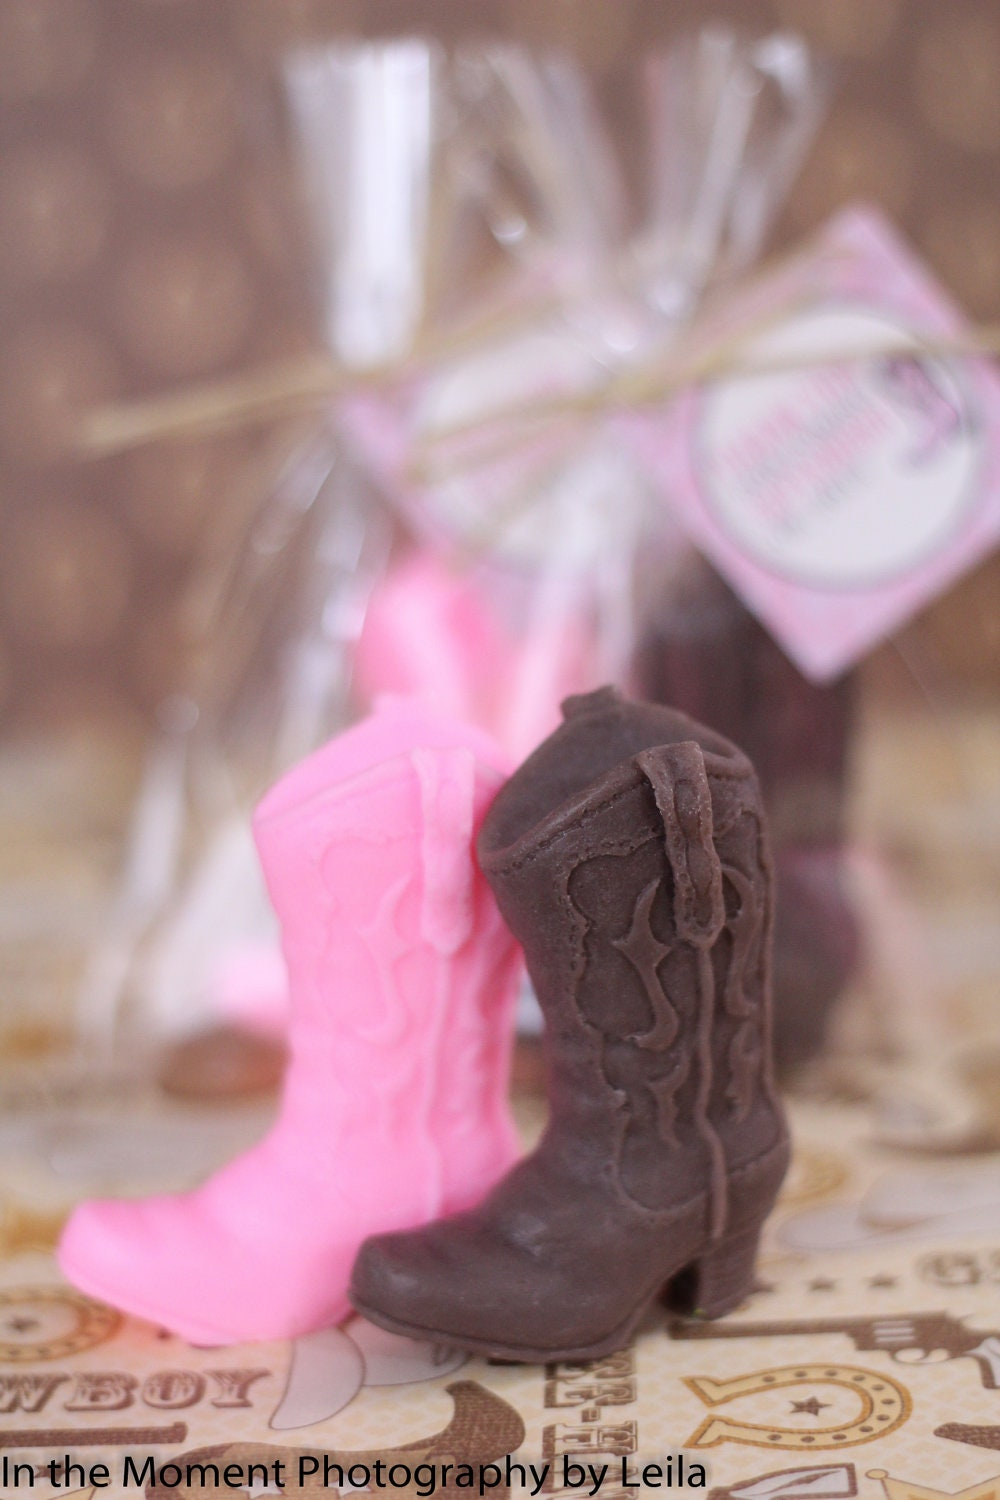 10 COWBOY BOOT SOAPS Favors Western Bridal Shower Favor